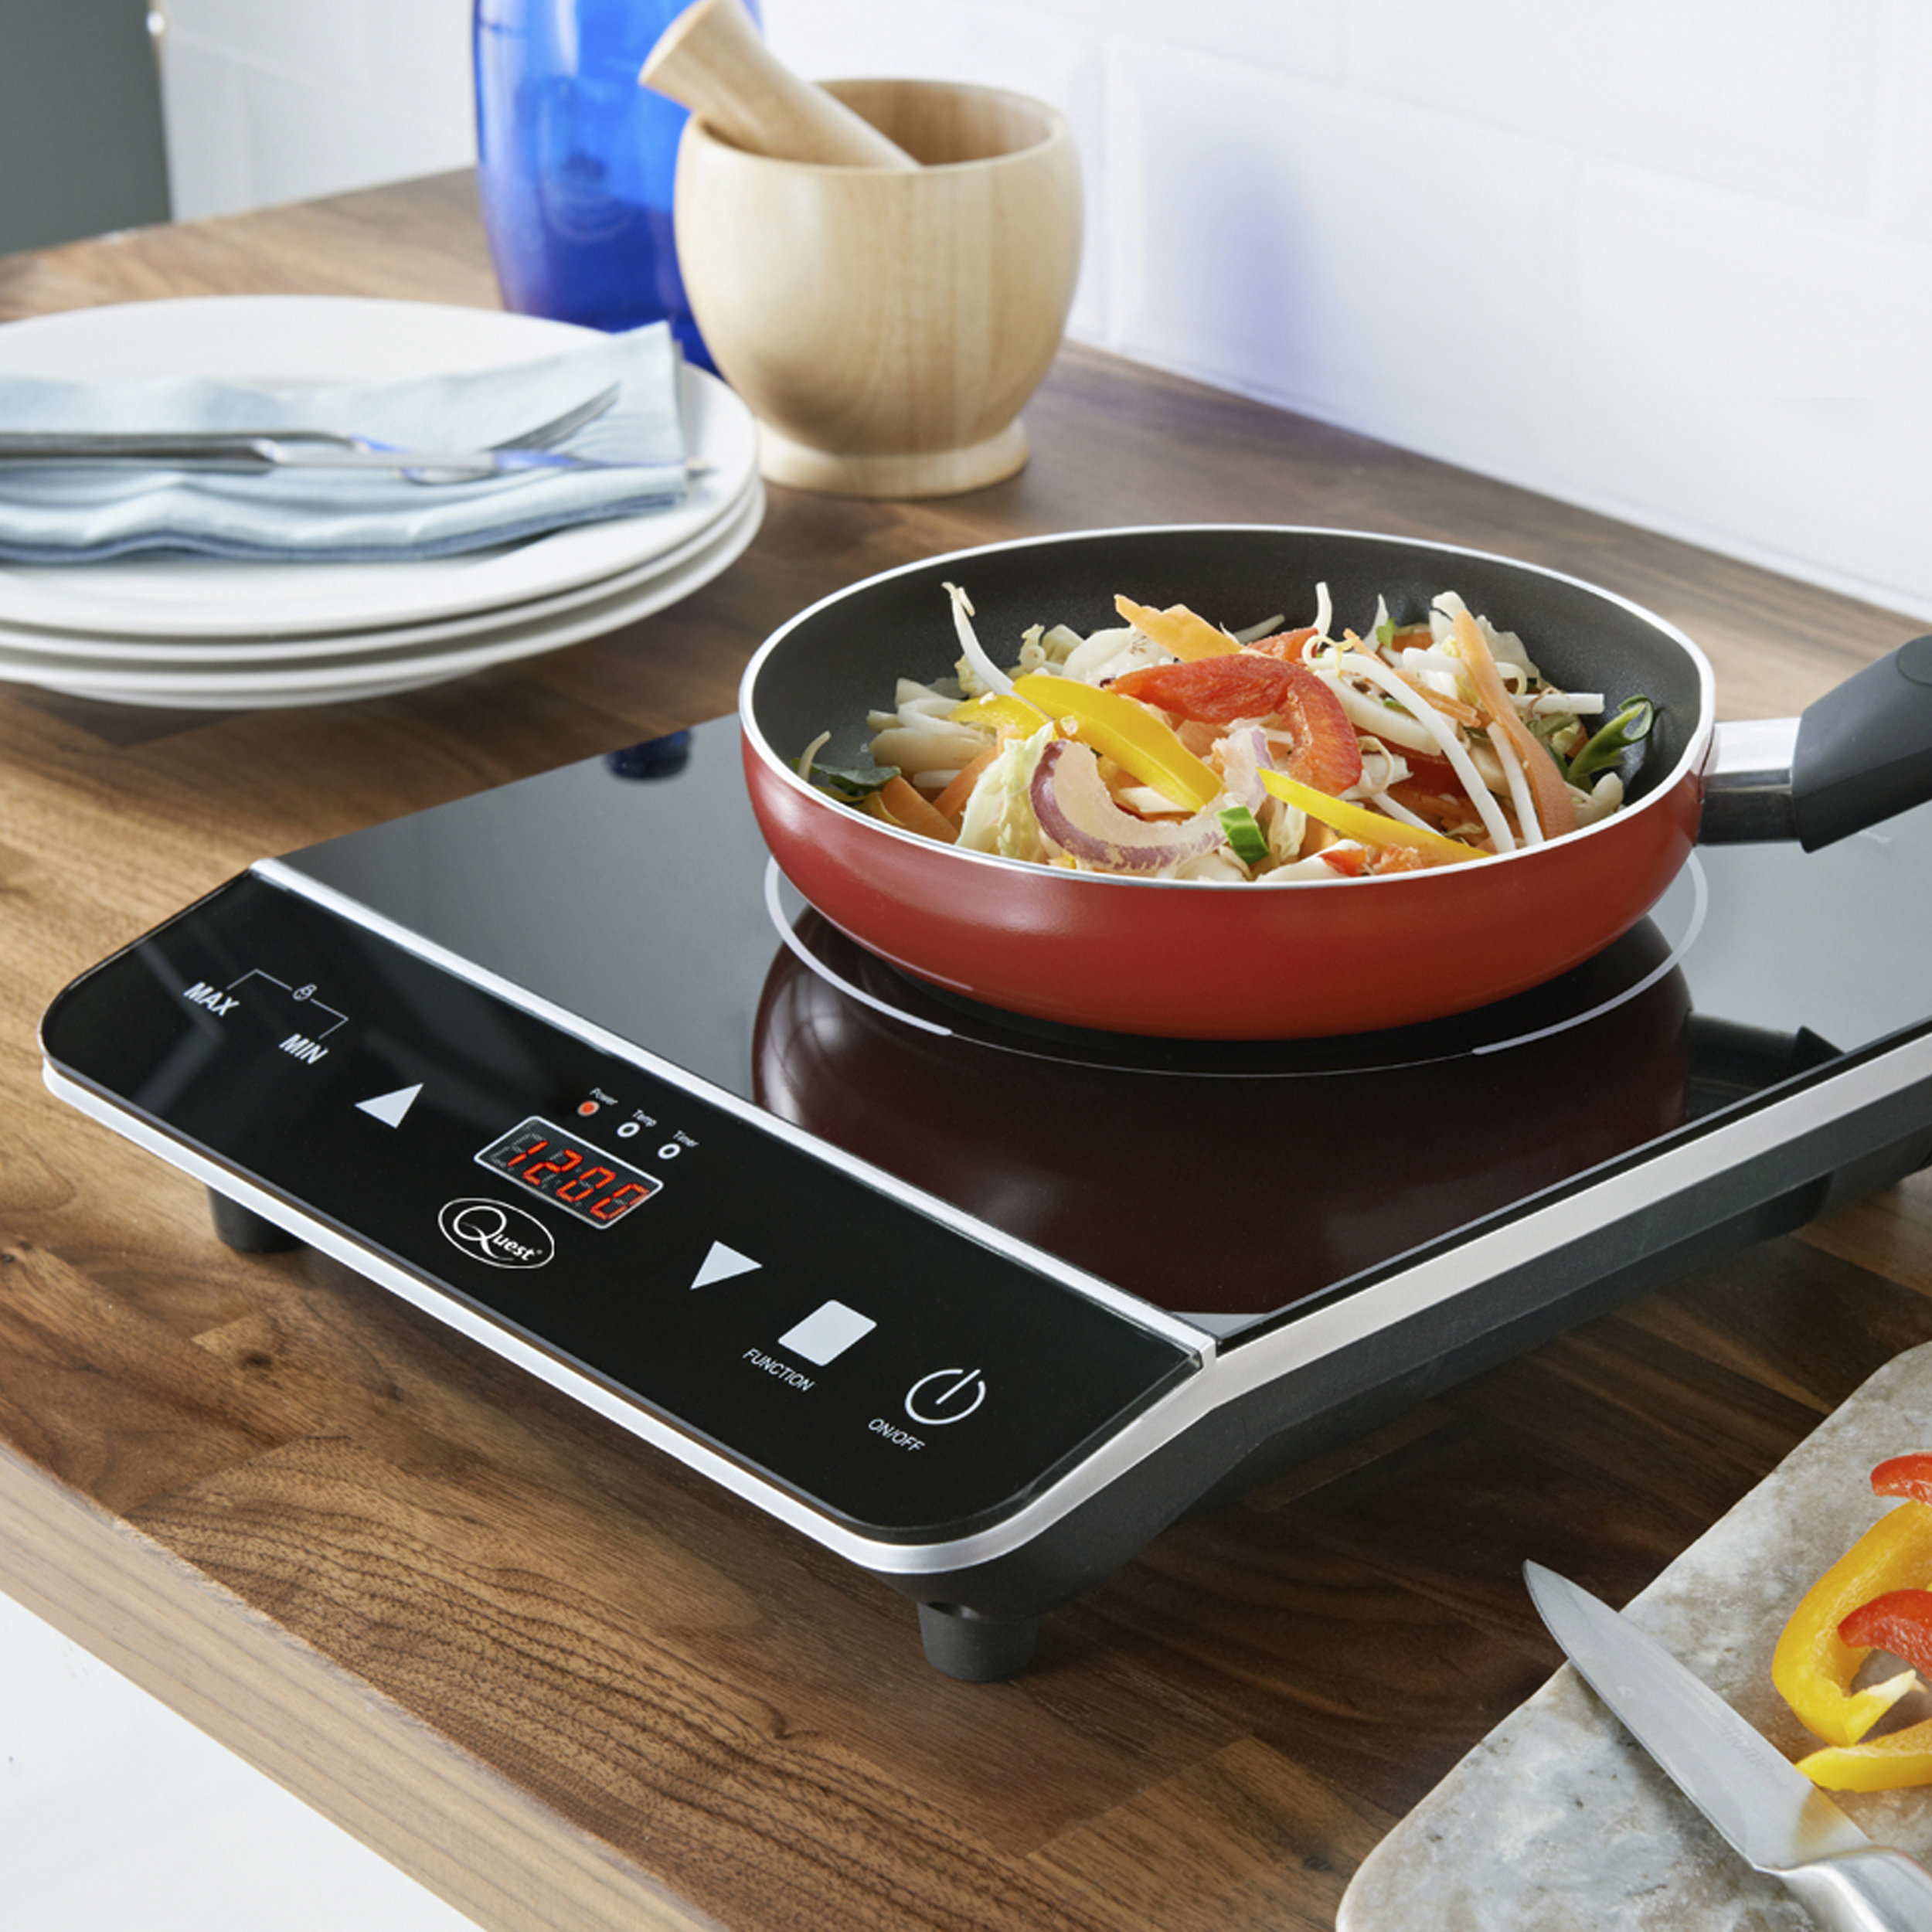 Digital Induction Hob (Single/Double) - Quick installation, simply position on a level surface & plug in. Ideal for smaller spaces. Rapid heat & precise temperature control.